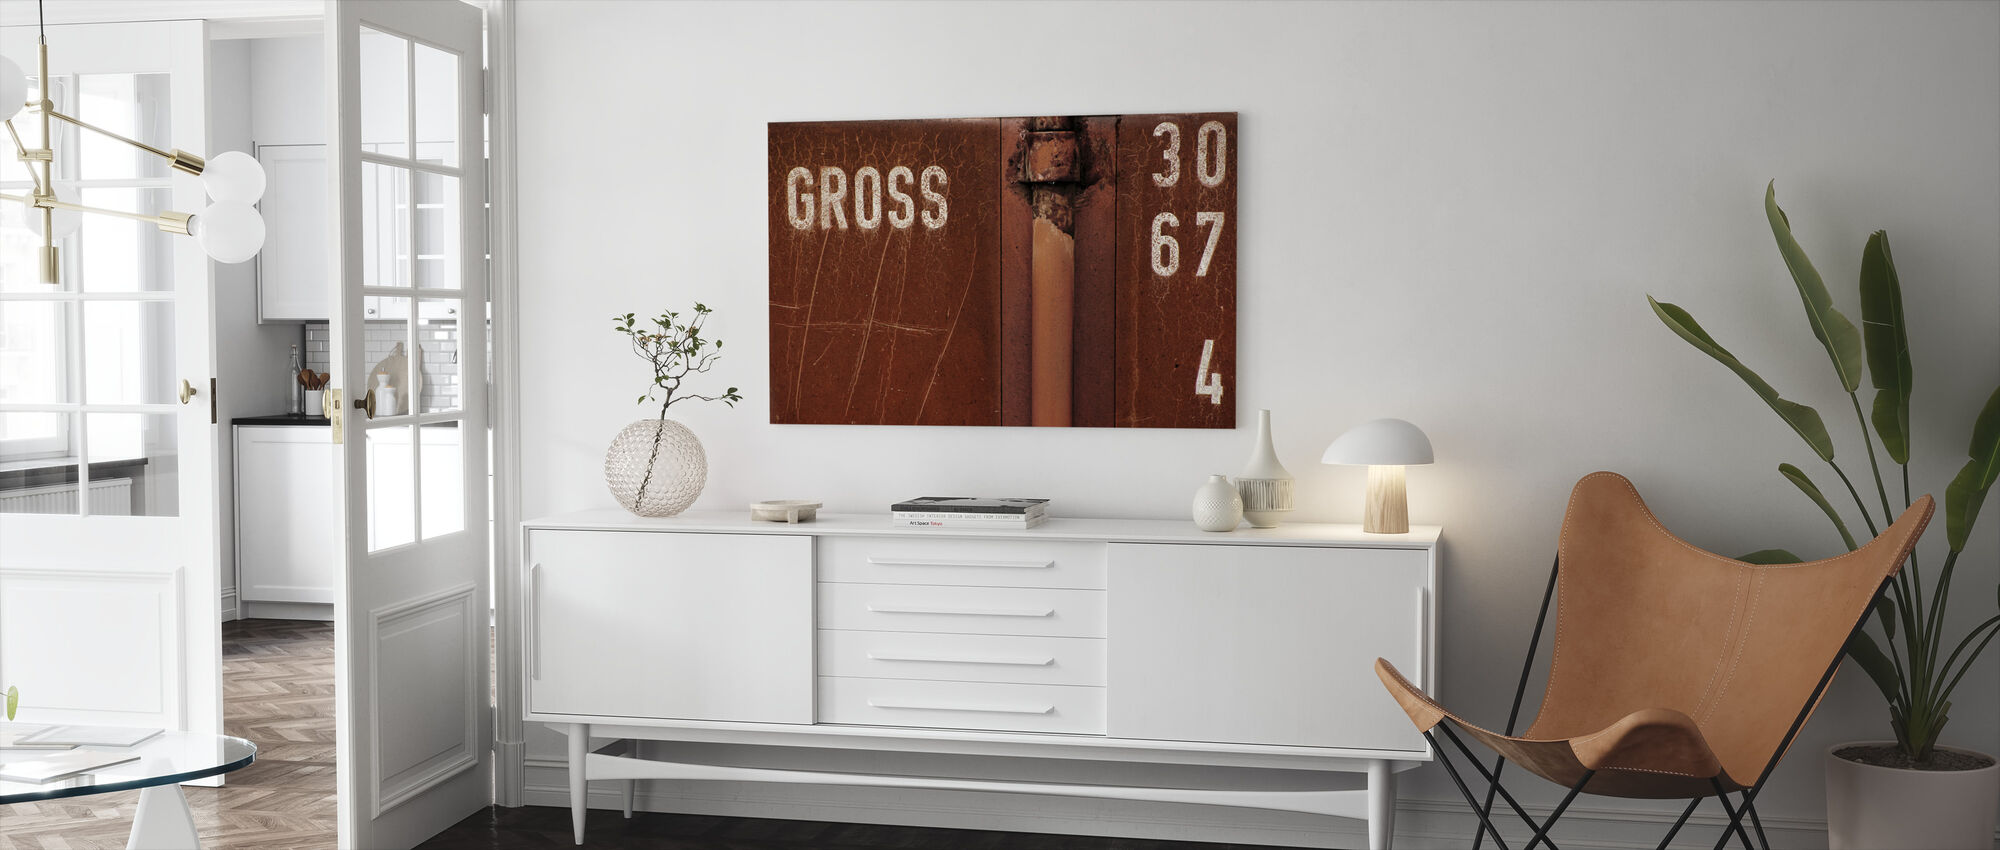 Gross Wall - Canvas print - Living Room